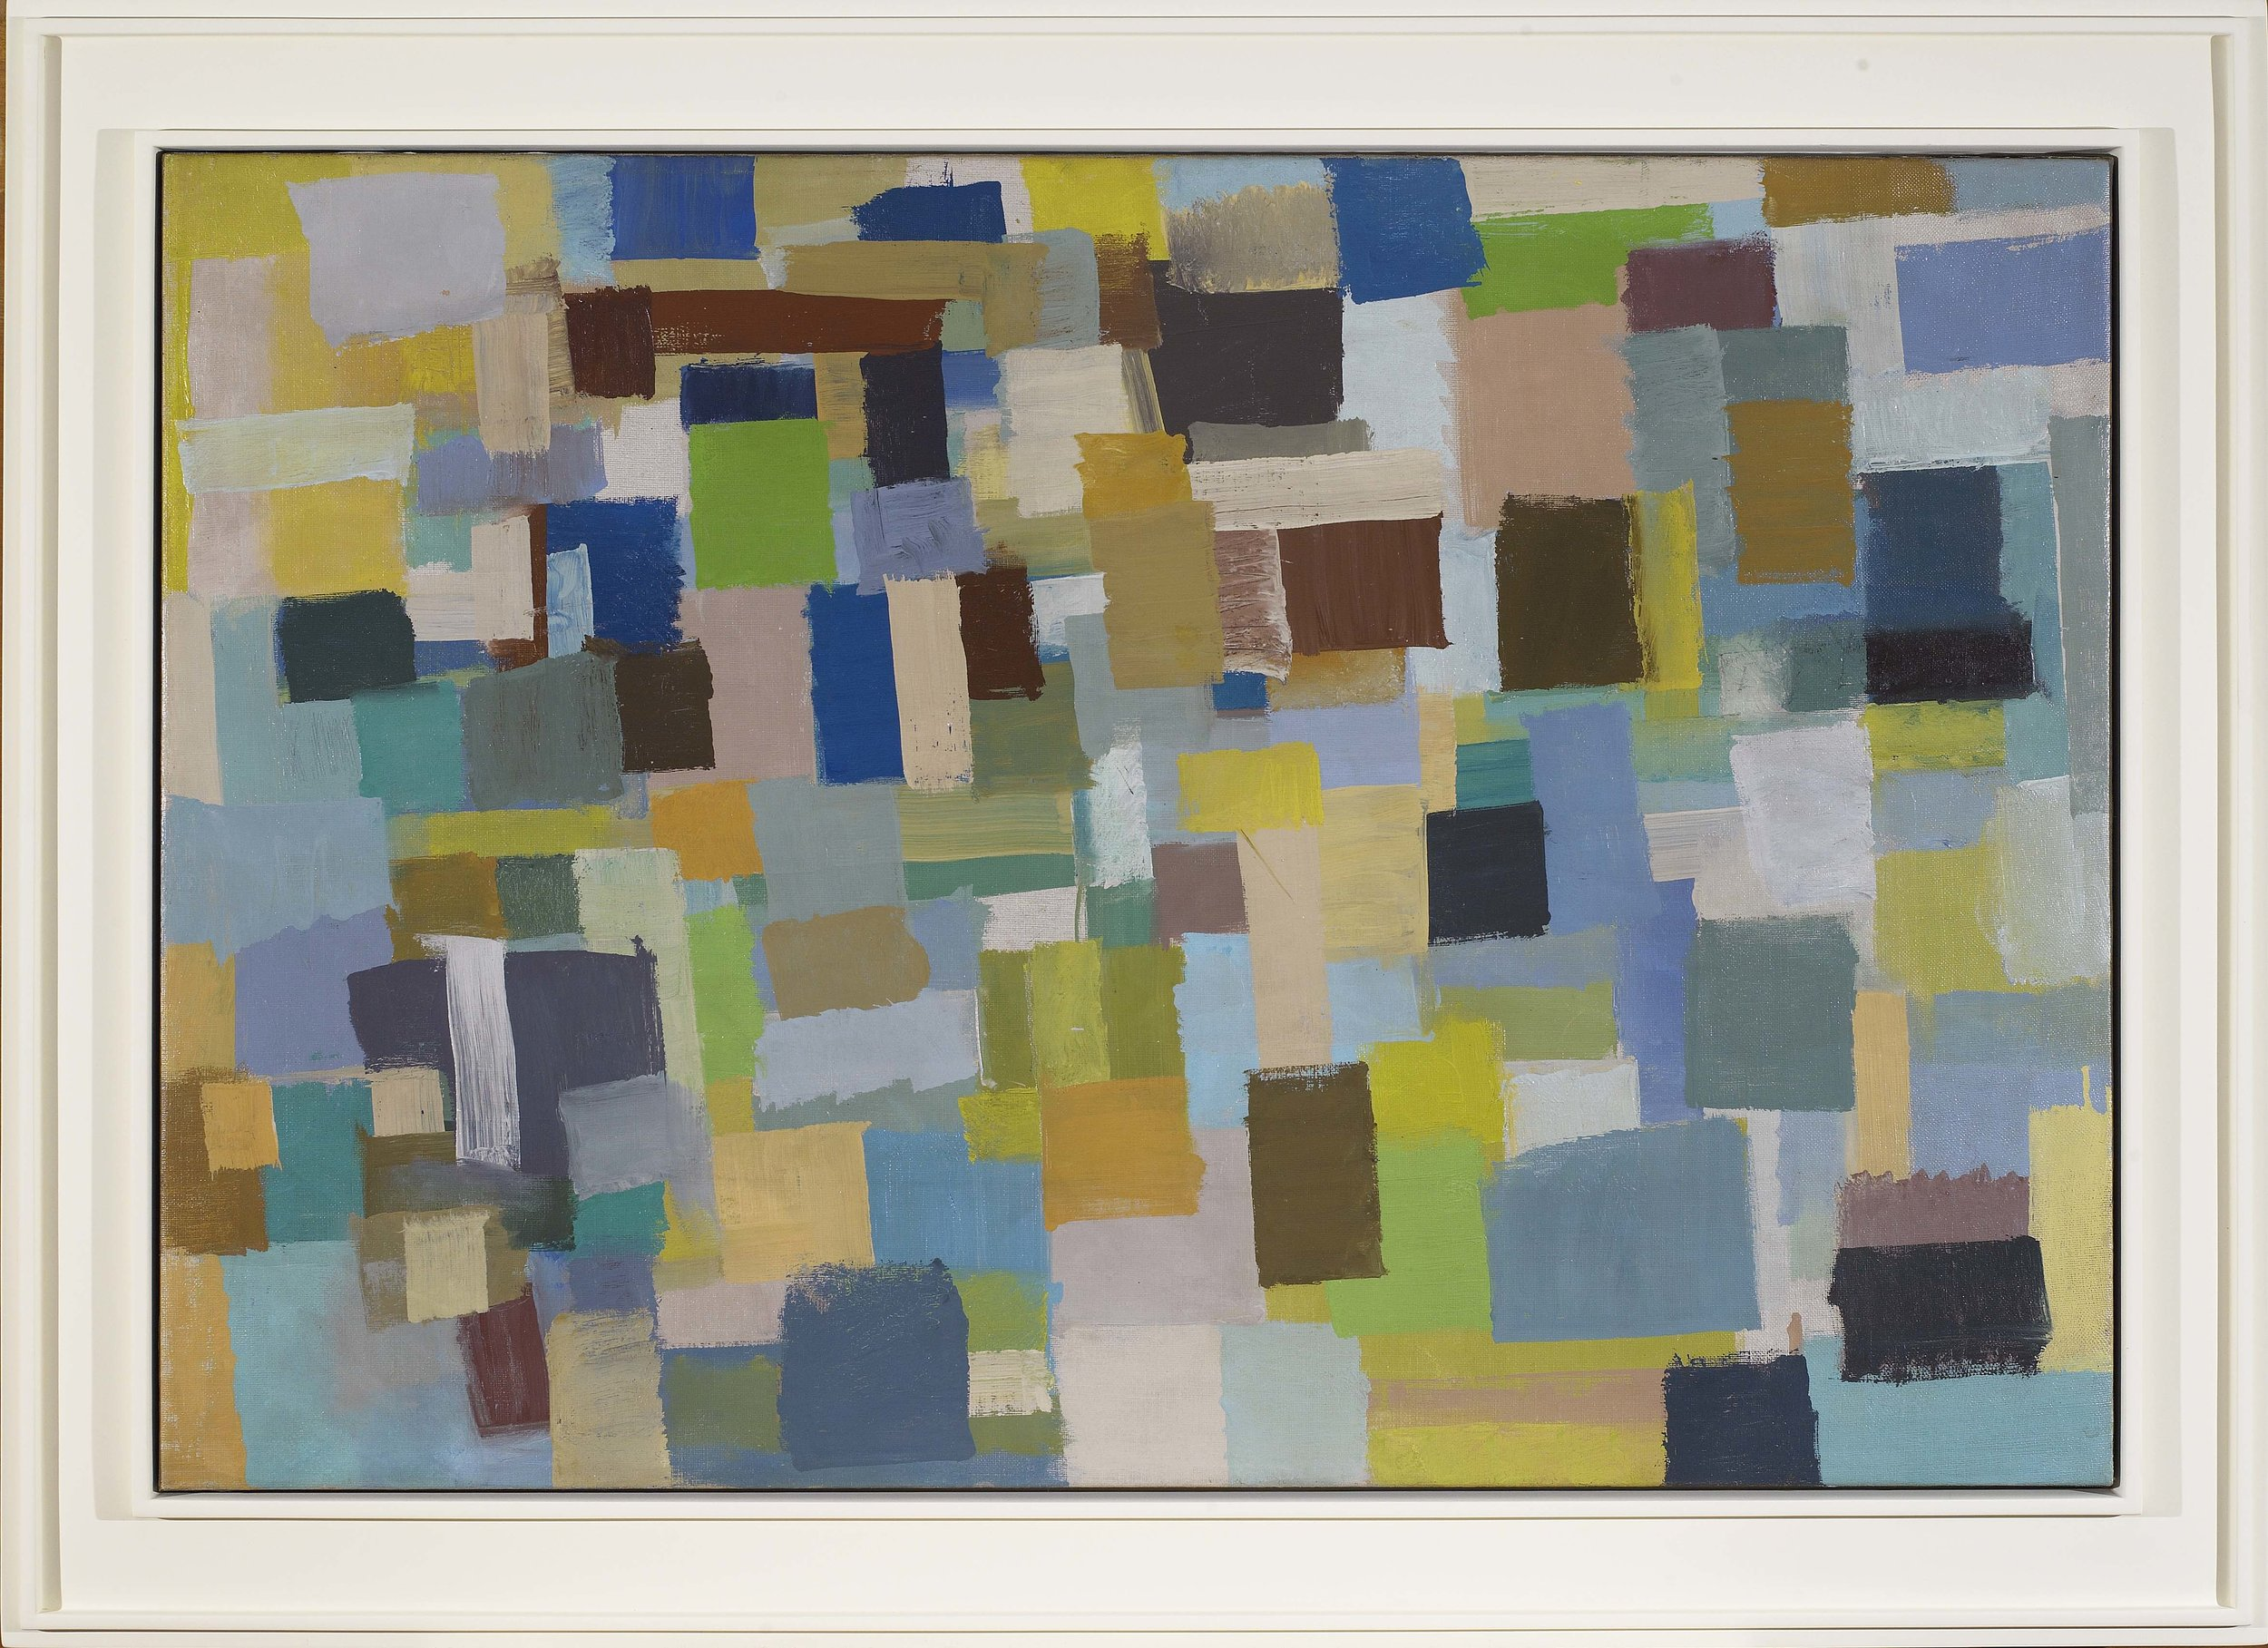 Untitled, 1953 , oil on canvas, 28 x 41 inches